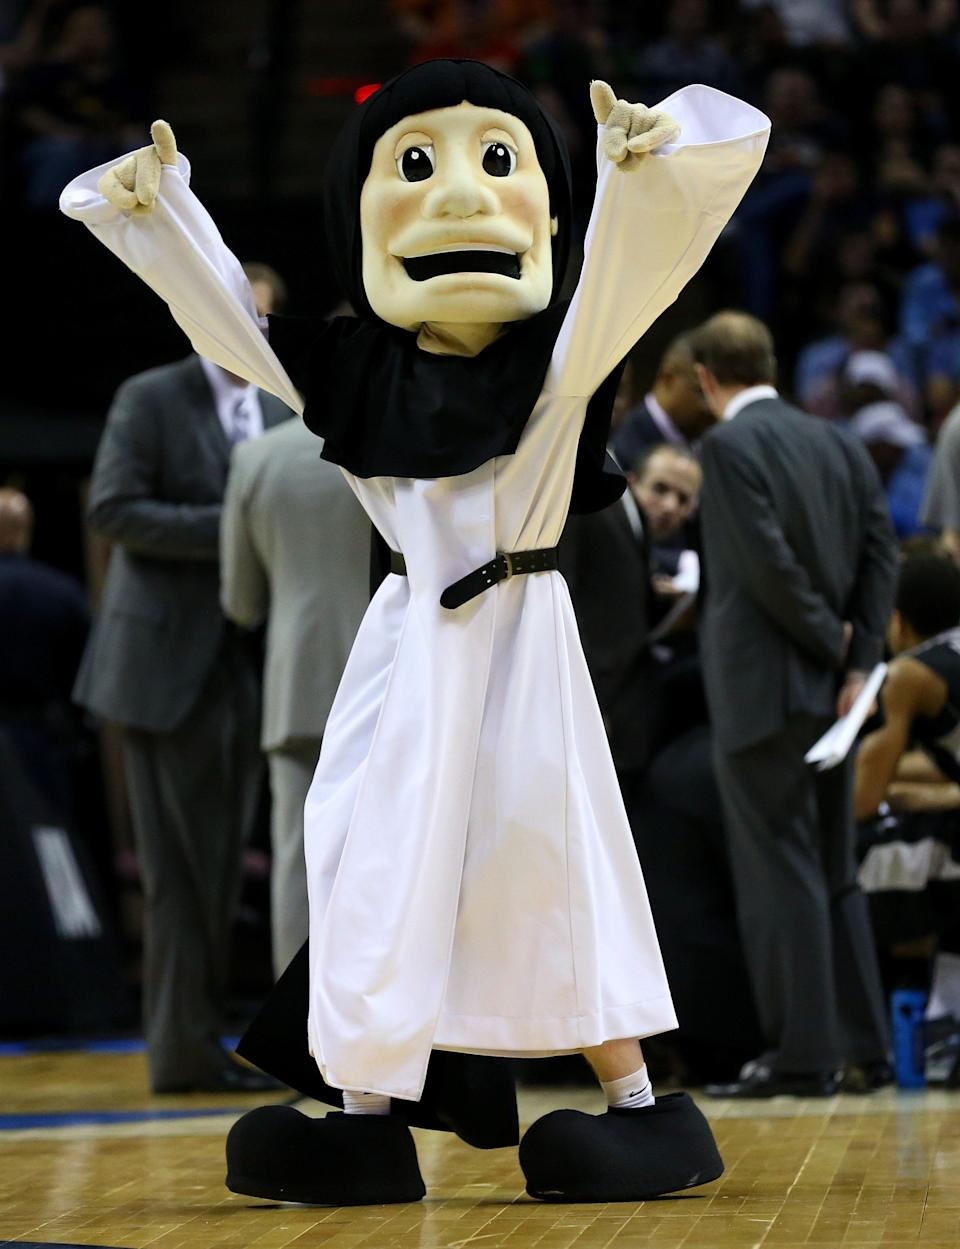 SAN ANTONIO, TX - MARCH 21:  The Providence Friars mascot is shown during a timeout of the Friars game against the North Carolina Tar Heels during the second round of the 2014 NCAA Men's Basketball Tournament at AT&T Center on March 21, 2014 in San Antonio, Texas.  (Photo by Ronald Martinez/Getty Images)